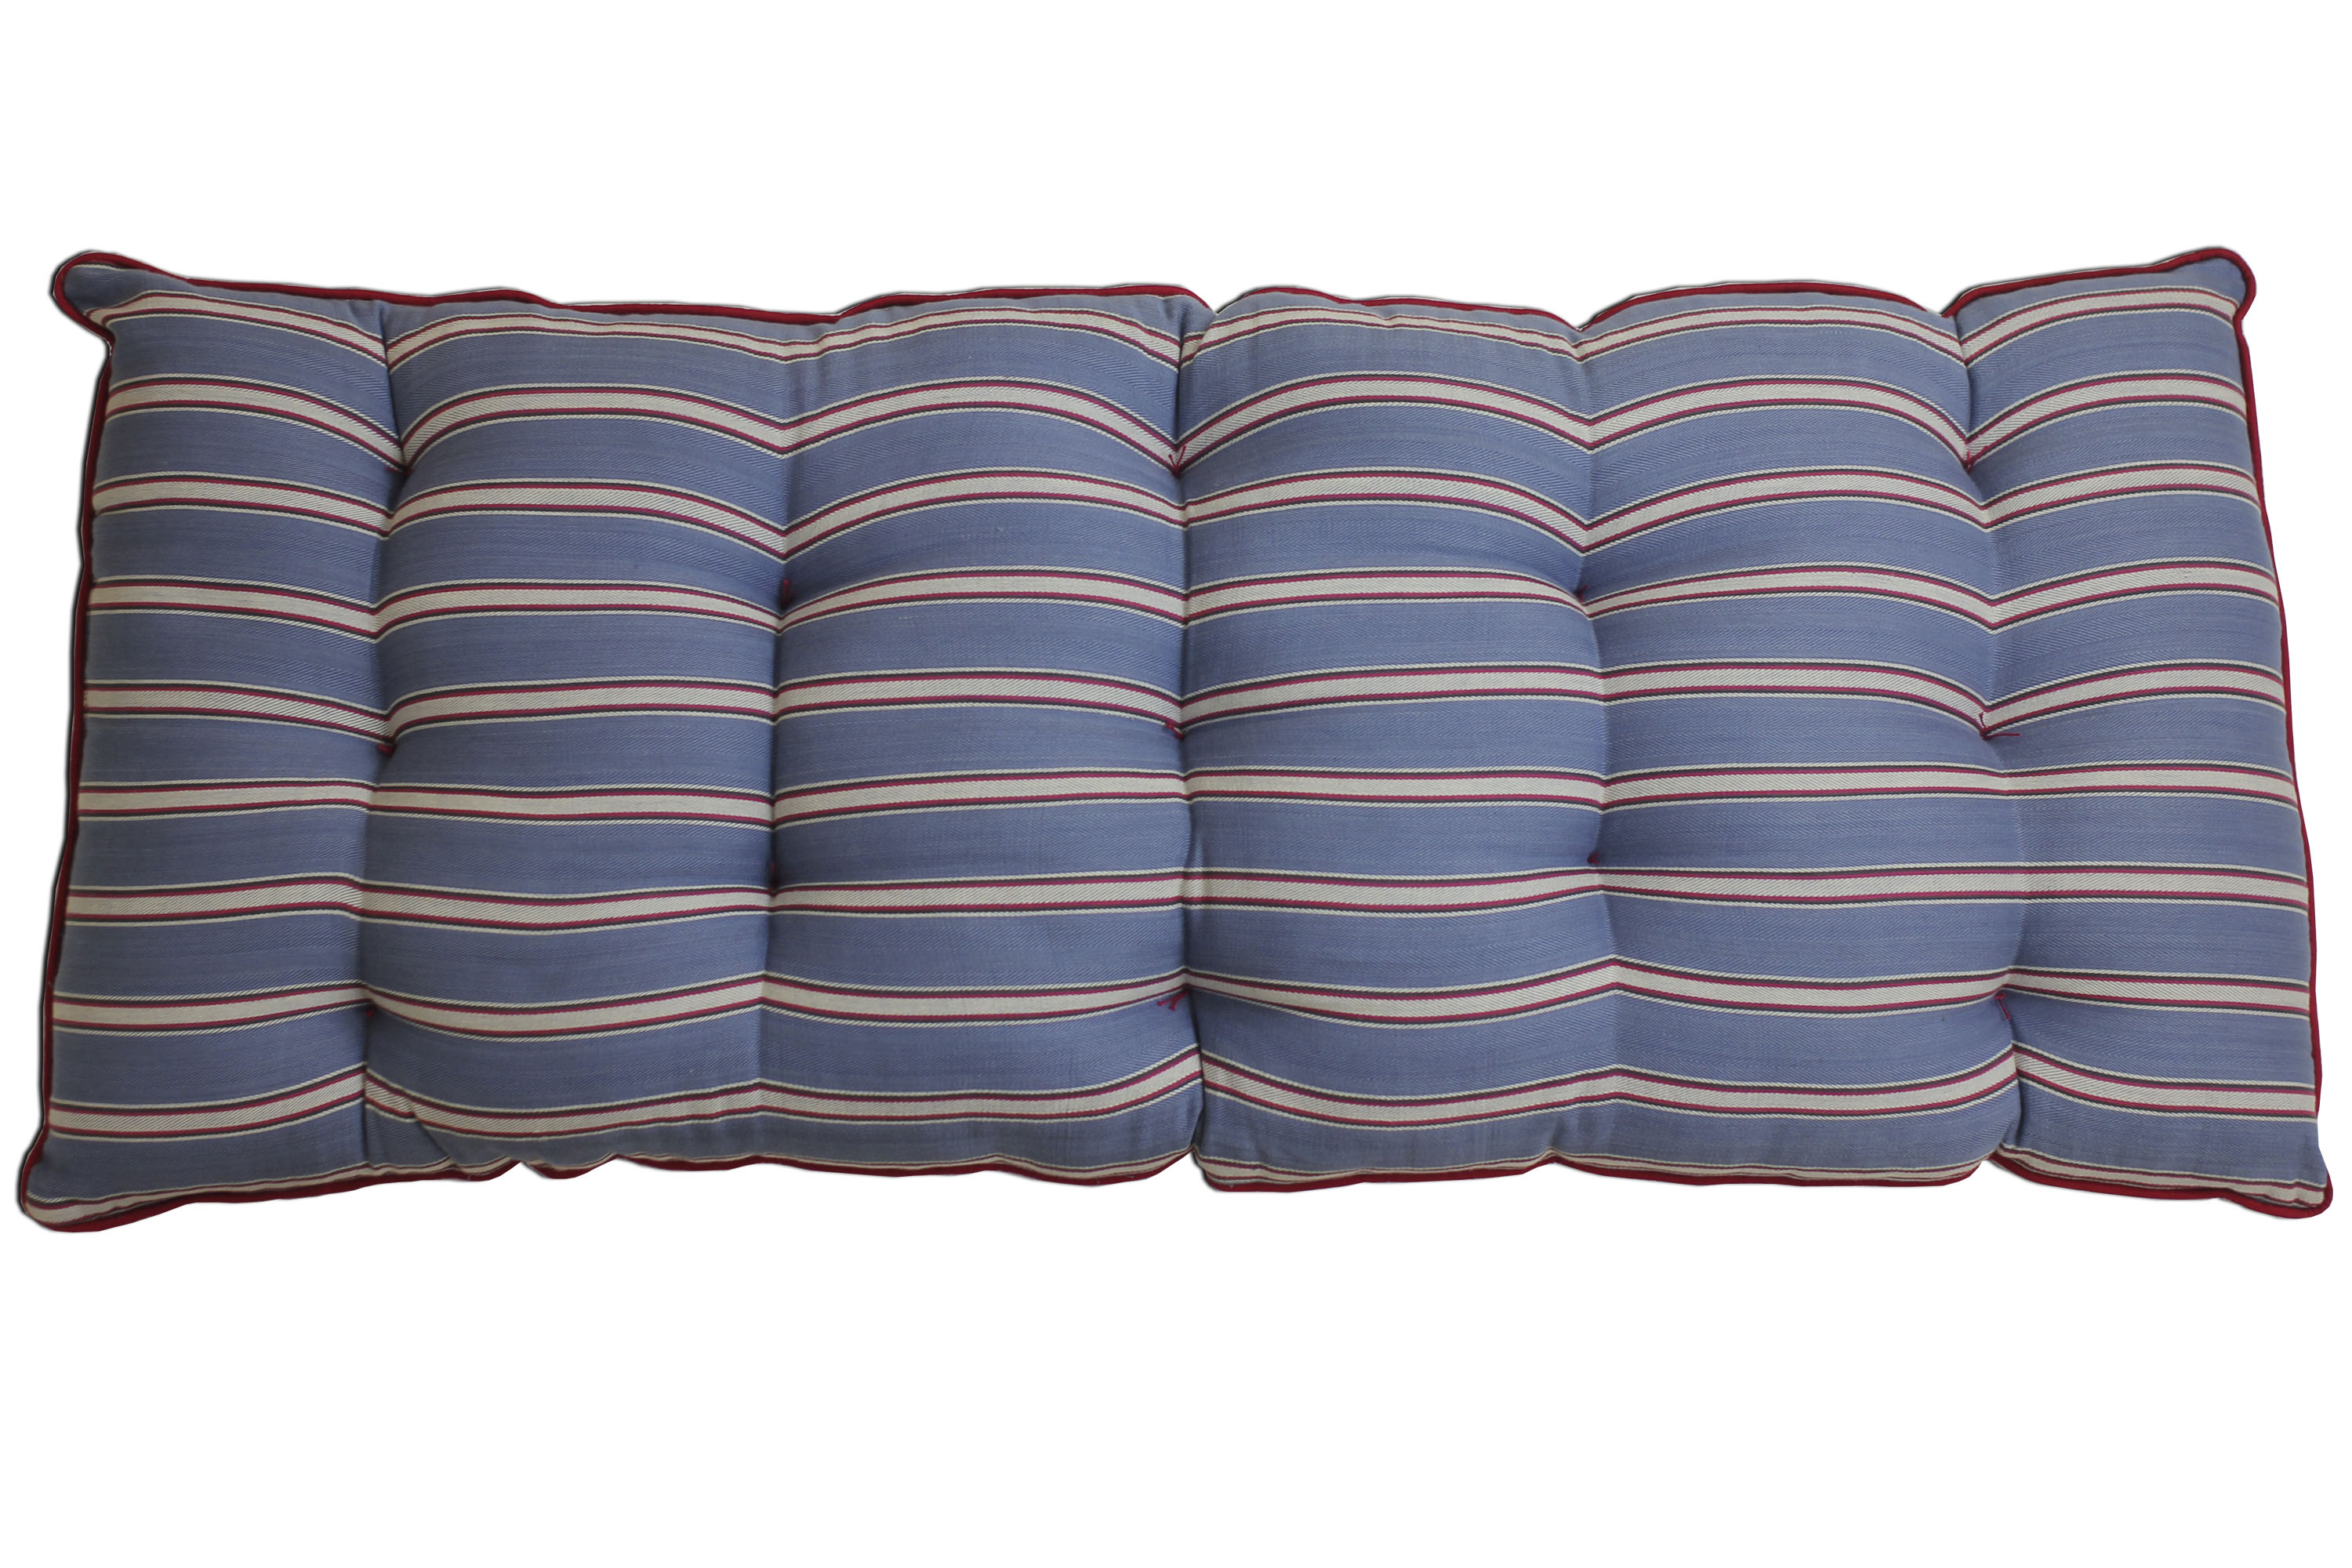 Blue Striped Bench Cushions | Long Seat Cushions Blue and Red Stripes